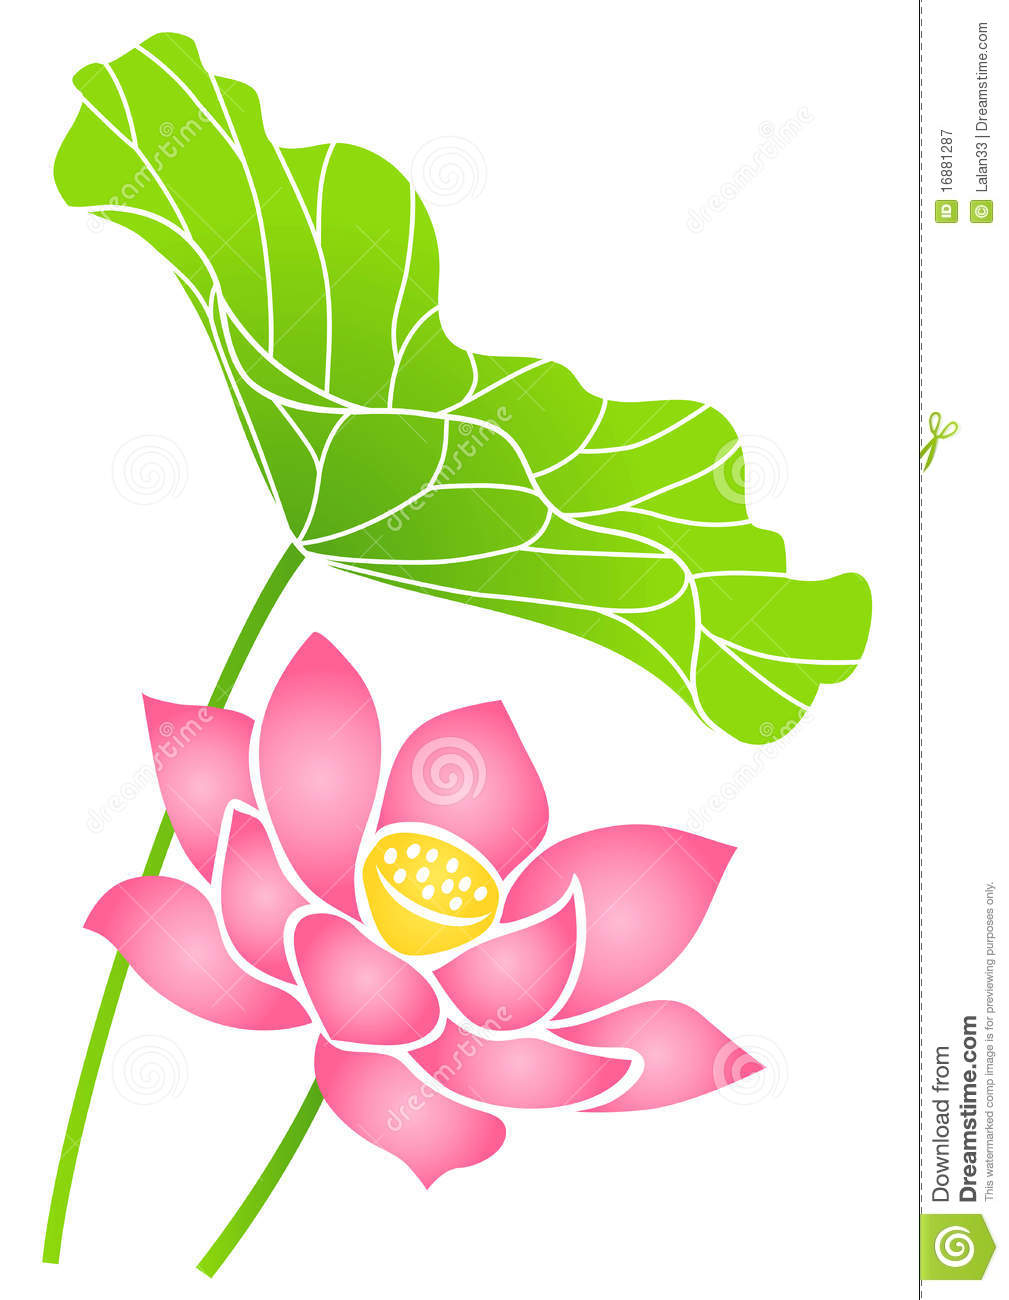 Lotus flower stock vector illustration of aquatic leaf 16881287 mightylinksfo